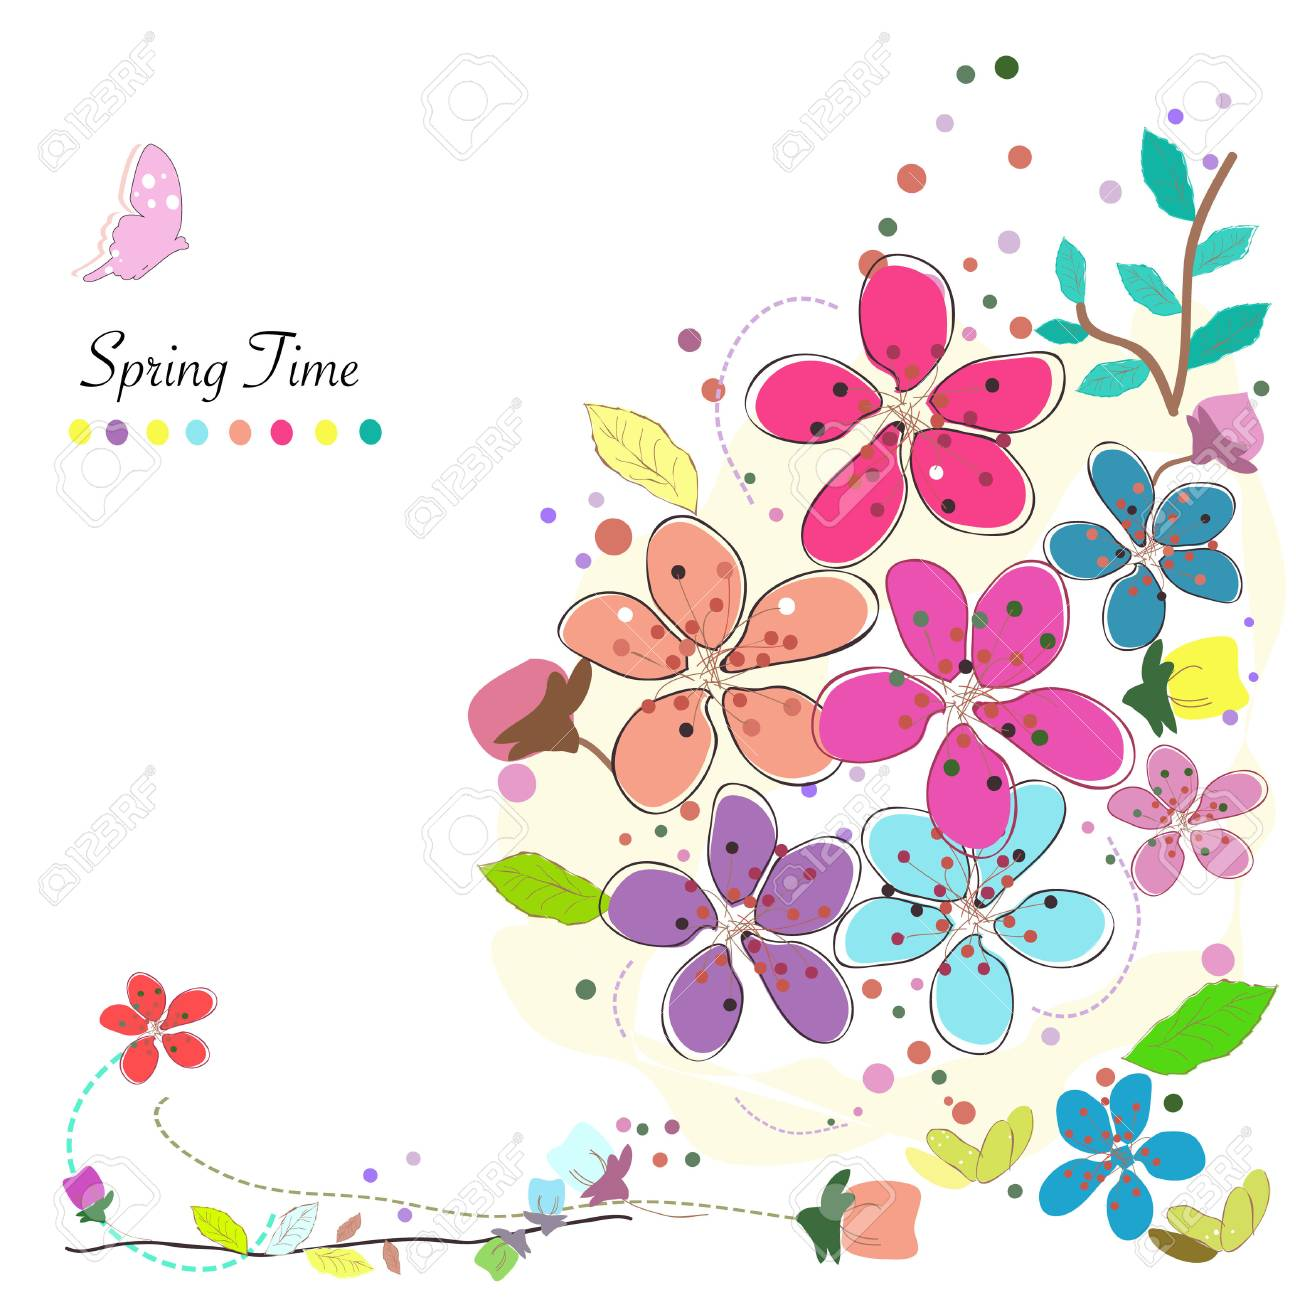 Spring Time Flowers Background Vector Colorful Abstract Doodle